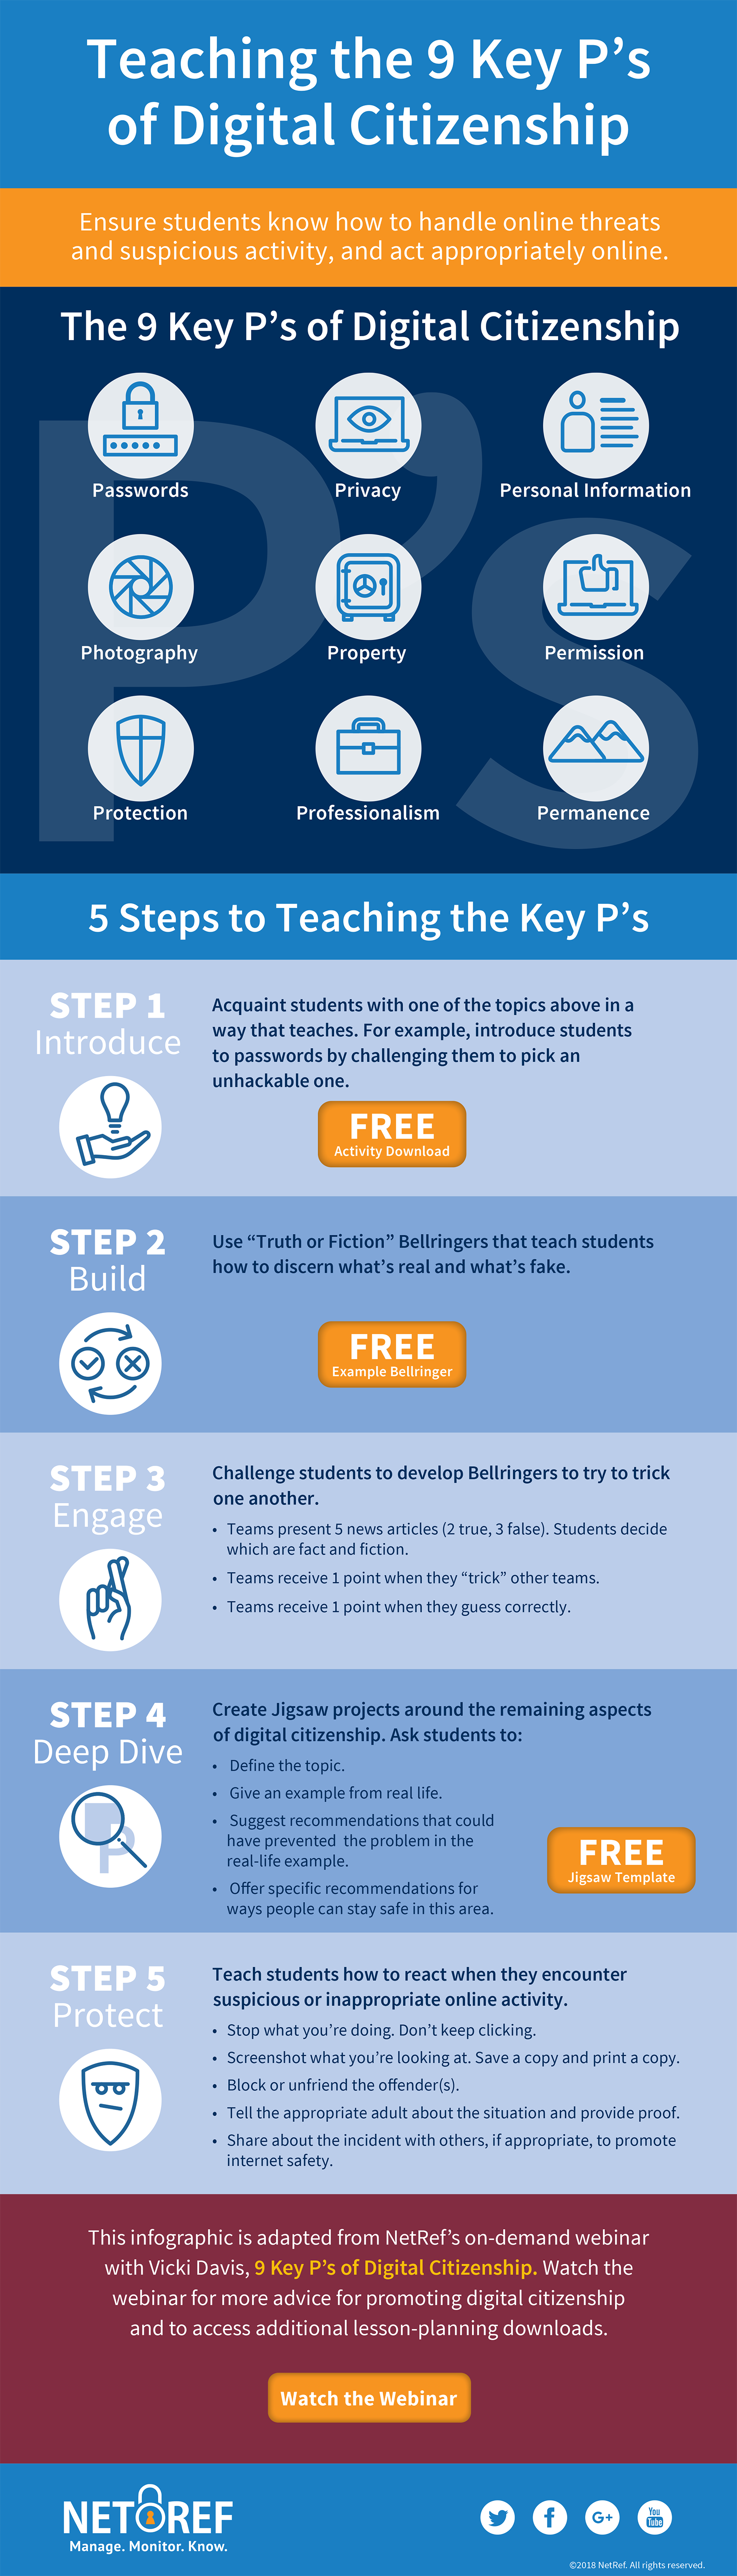 Infographic: 5 Steps to Teaching the 9 Key P's of Digital